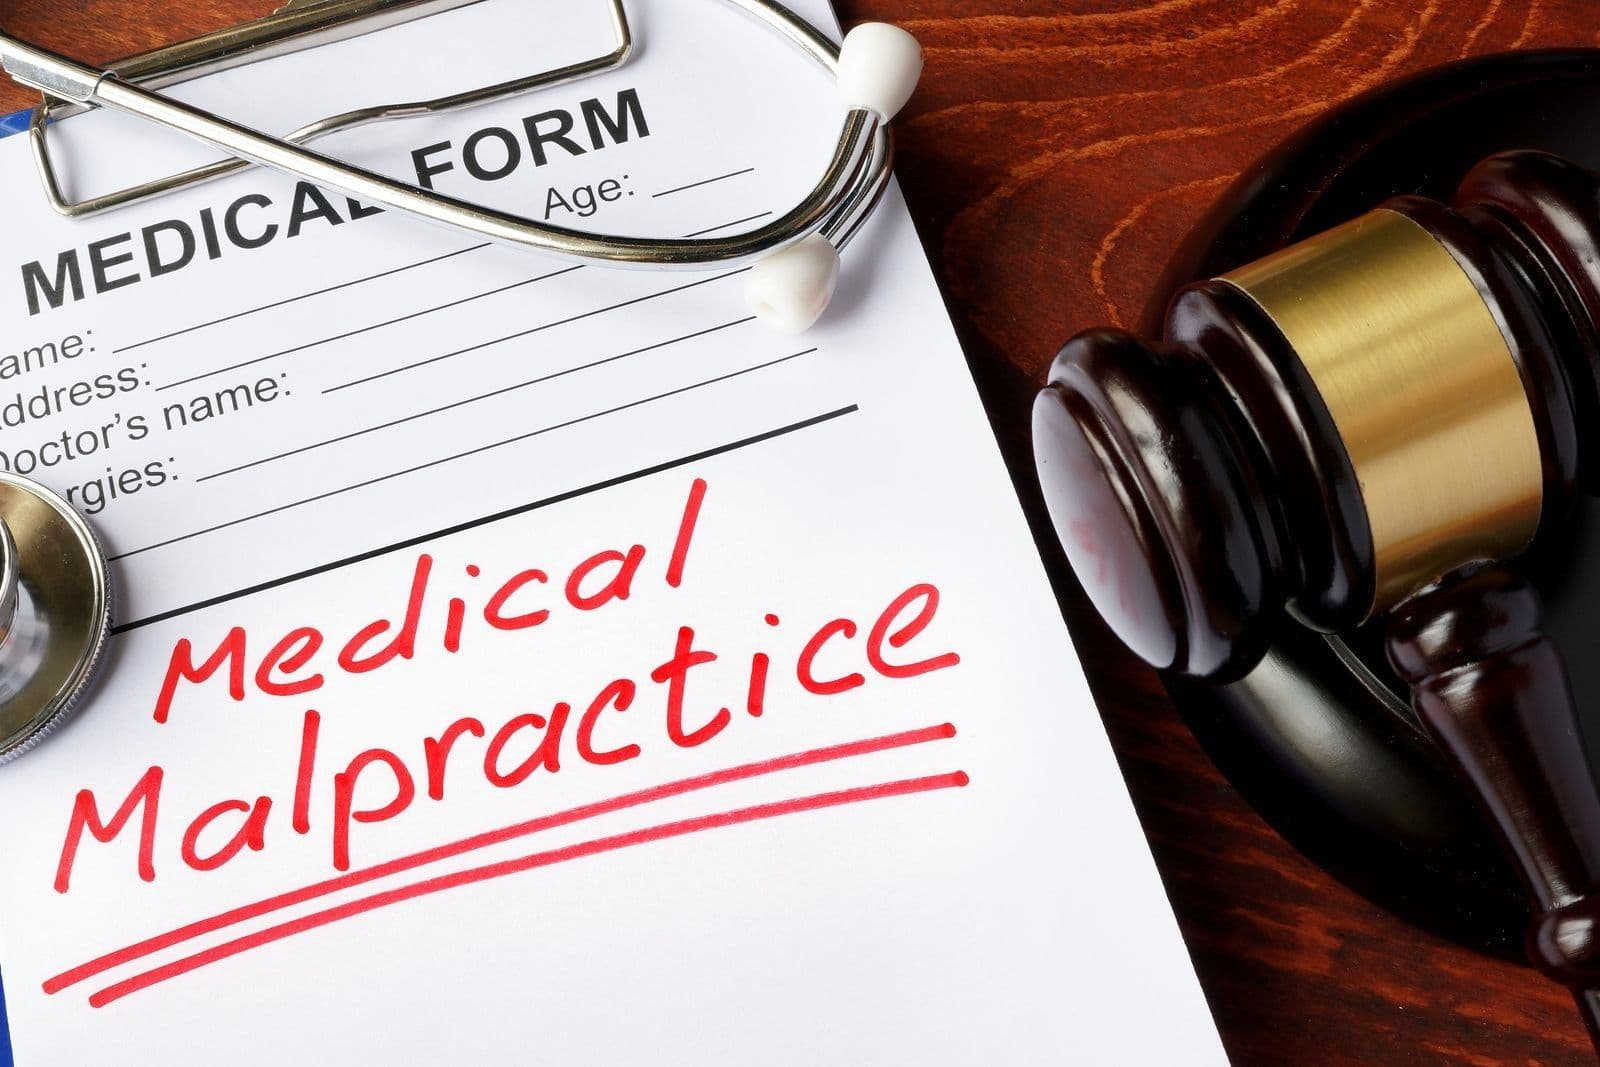 Medical Malpractice Attorney Offers Legal Advice to Recovering Patient